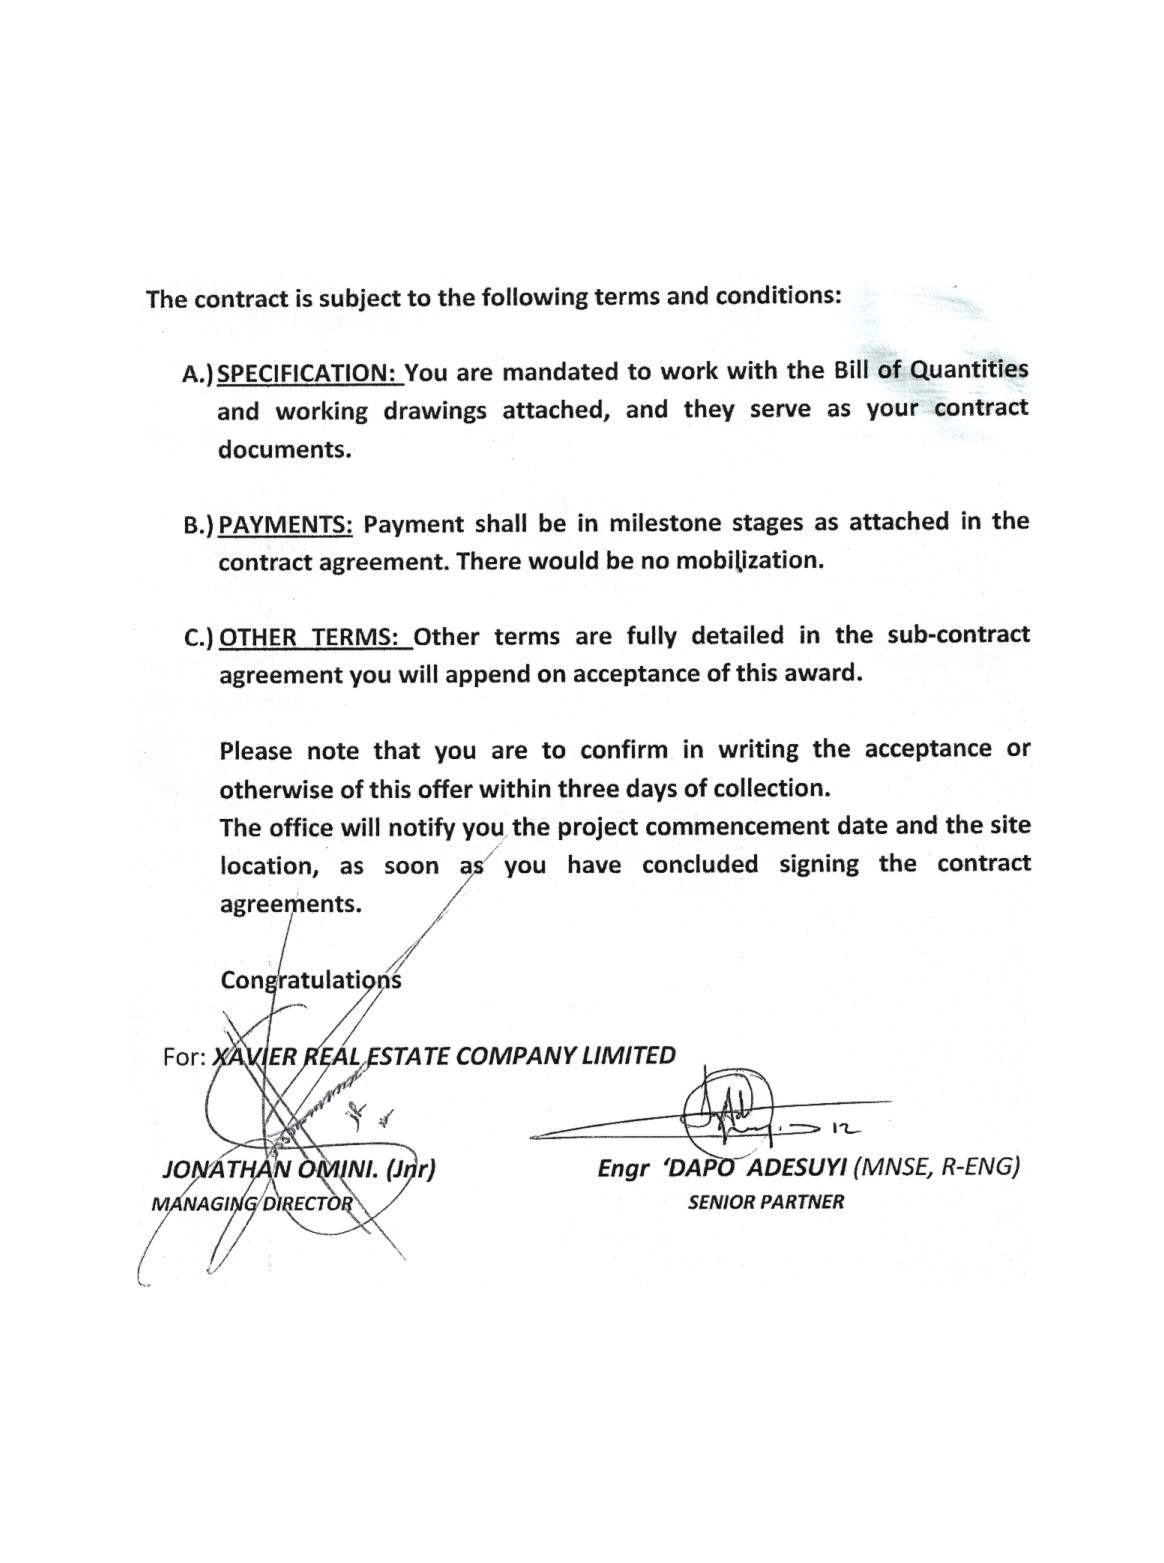 Sle letter of contract award 28 images award letter template 13 sle letter of contract award 4 bedroom bongalow construction contracts for sub lets properties nigeria thecheapjerseys Choice Image